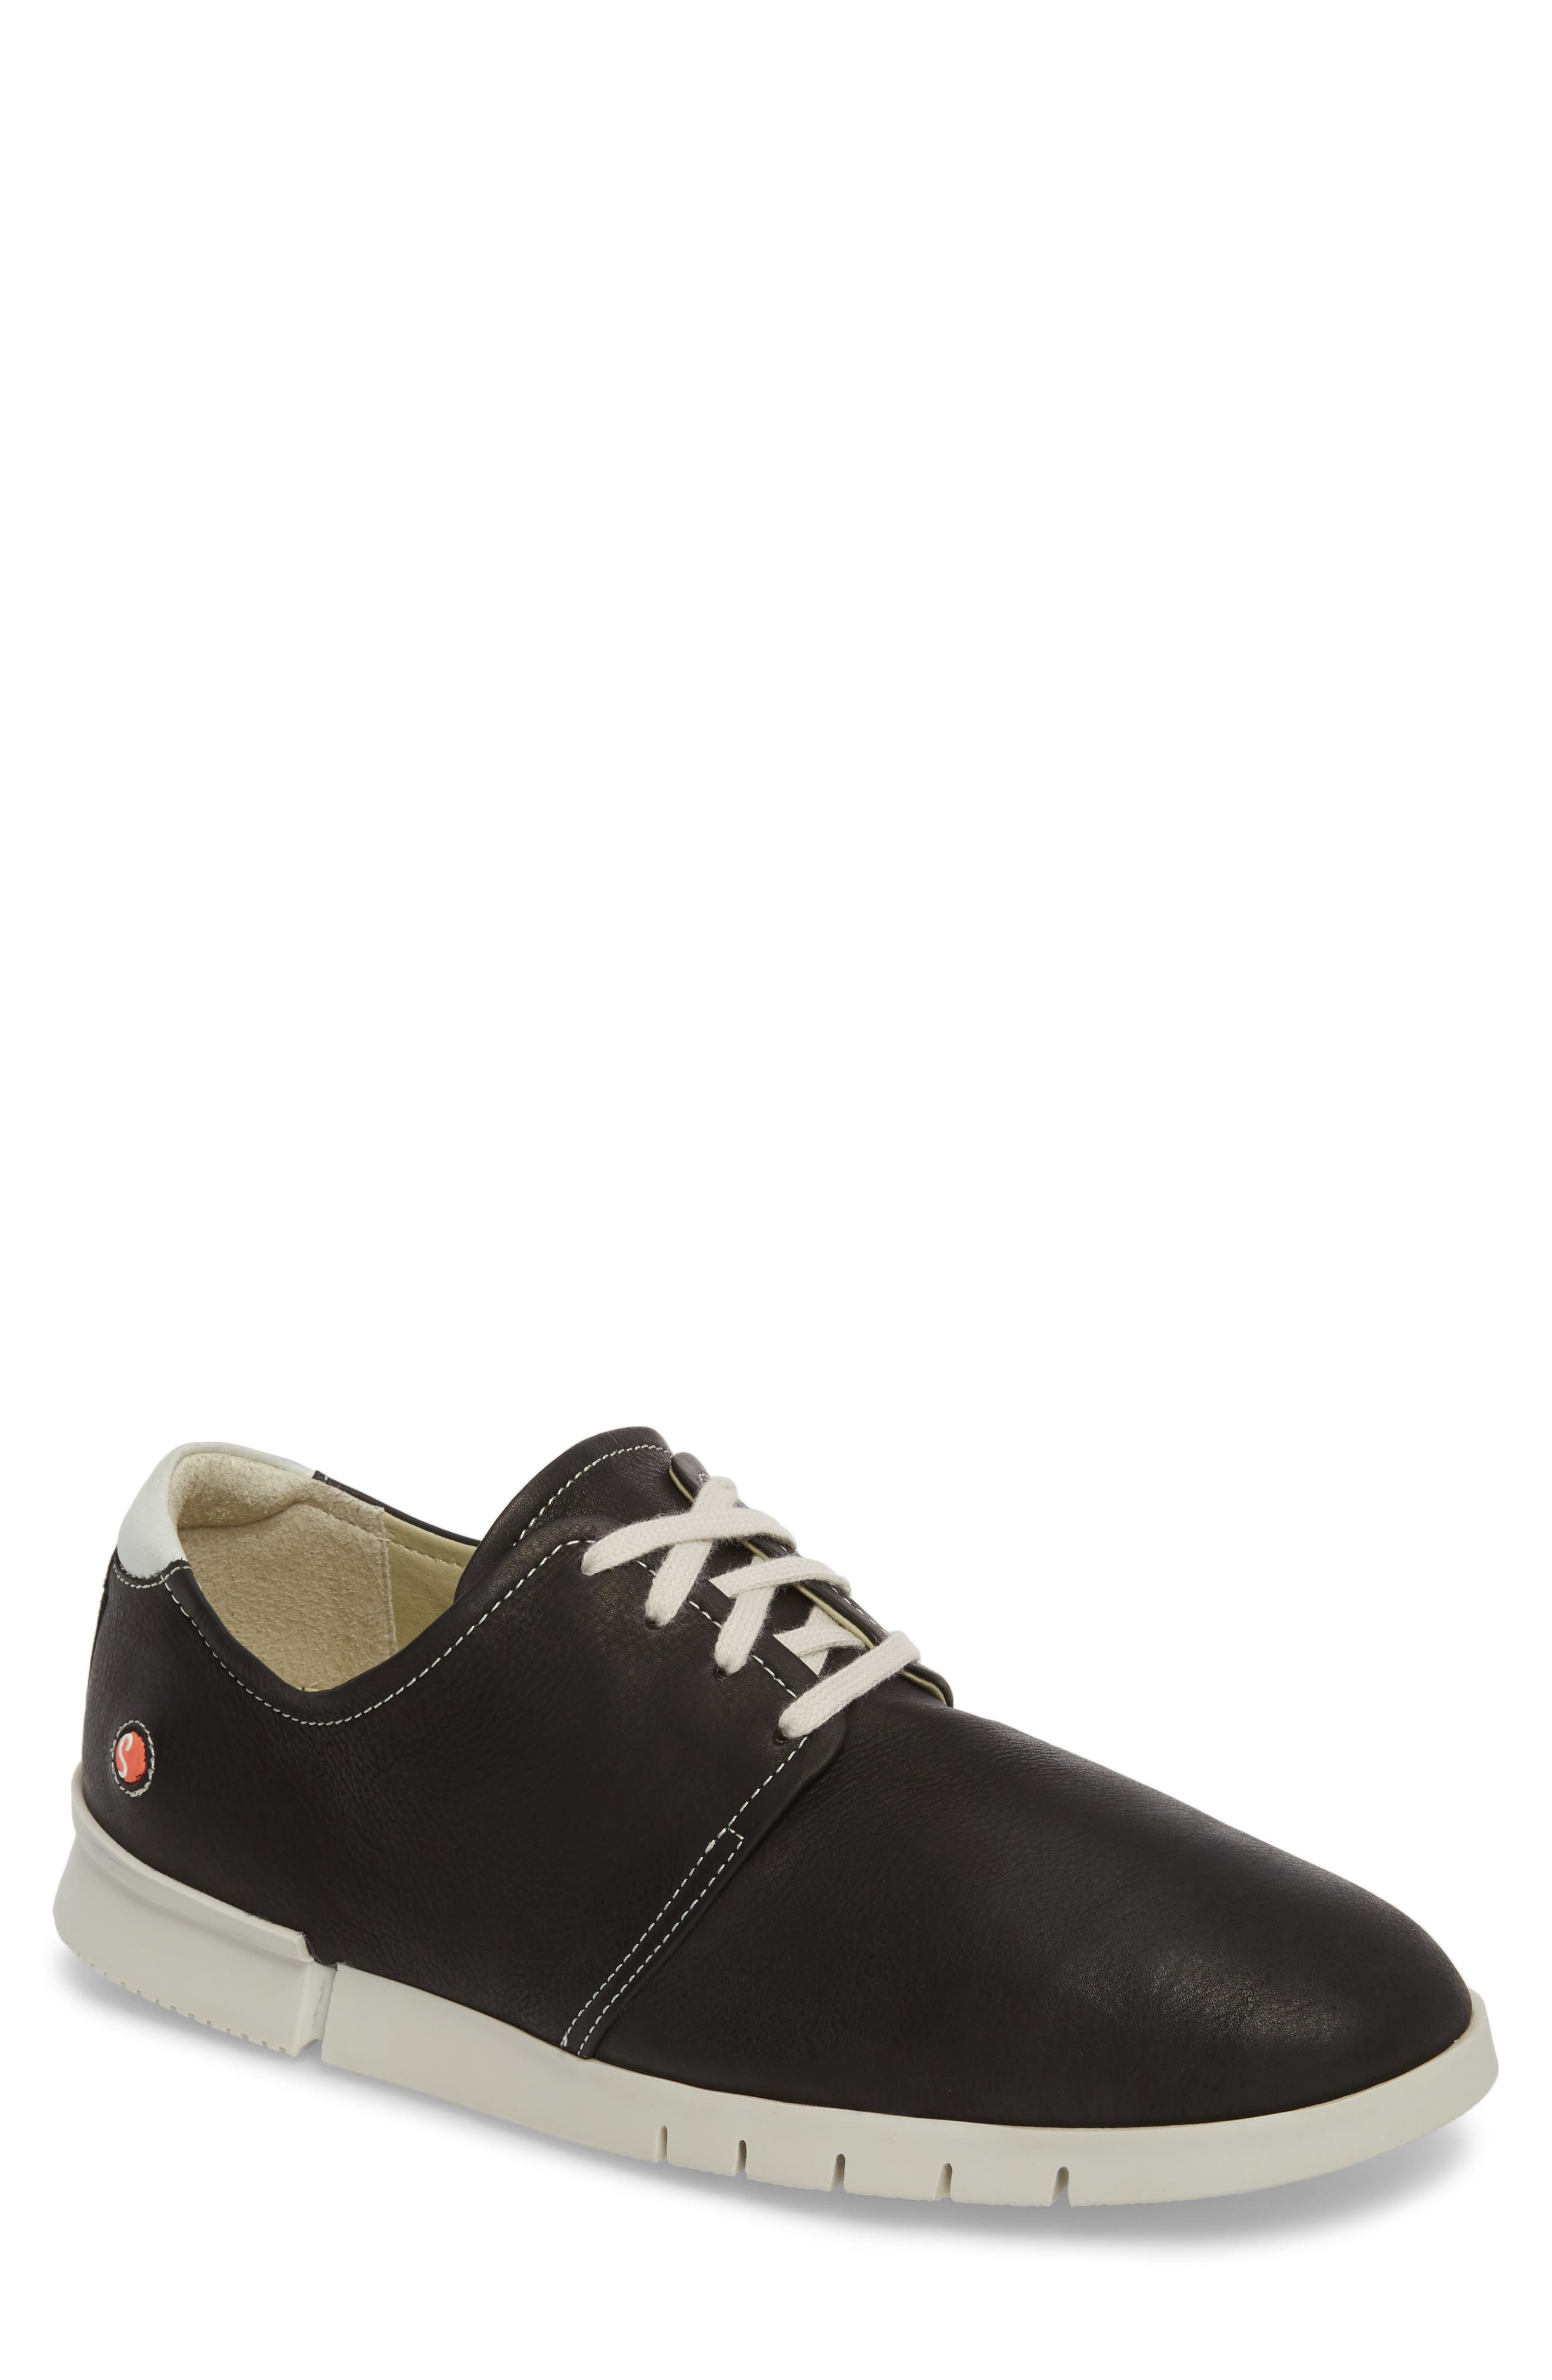 Cap Low Top Sneaker,                             Main thumbnail 1, color,                             BLACK/ WHITE LEATHER